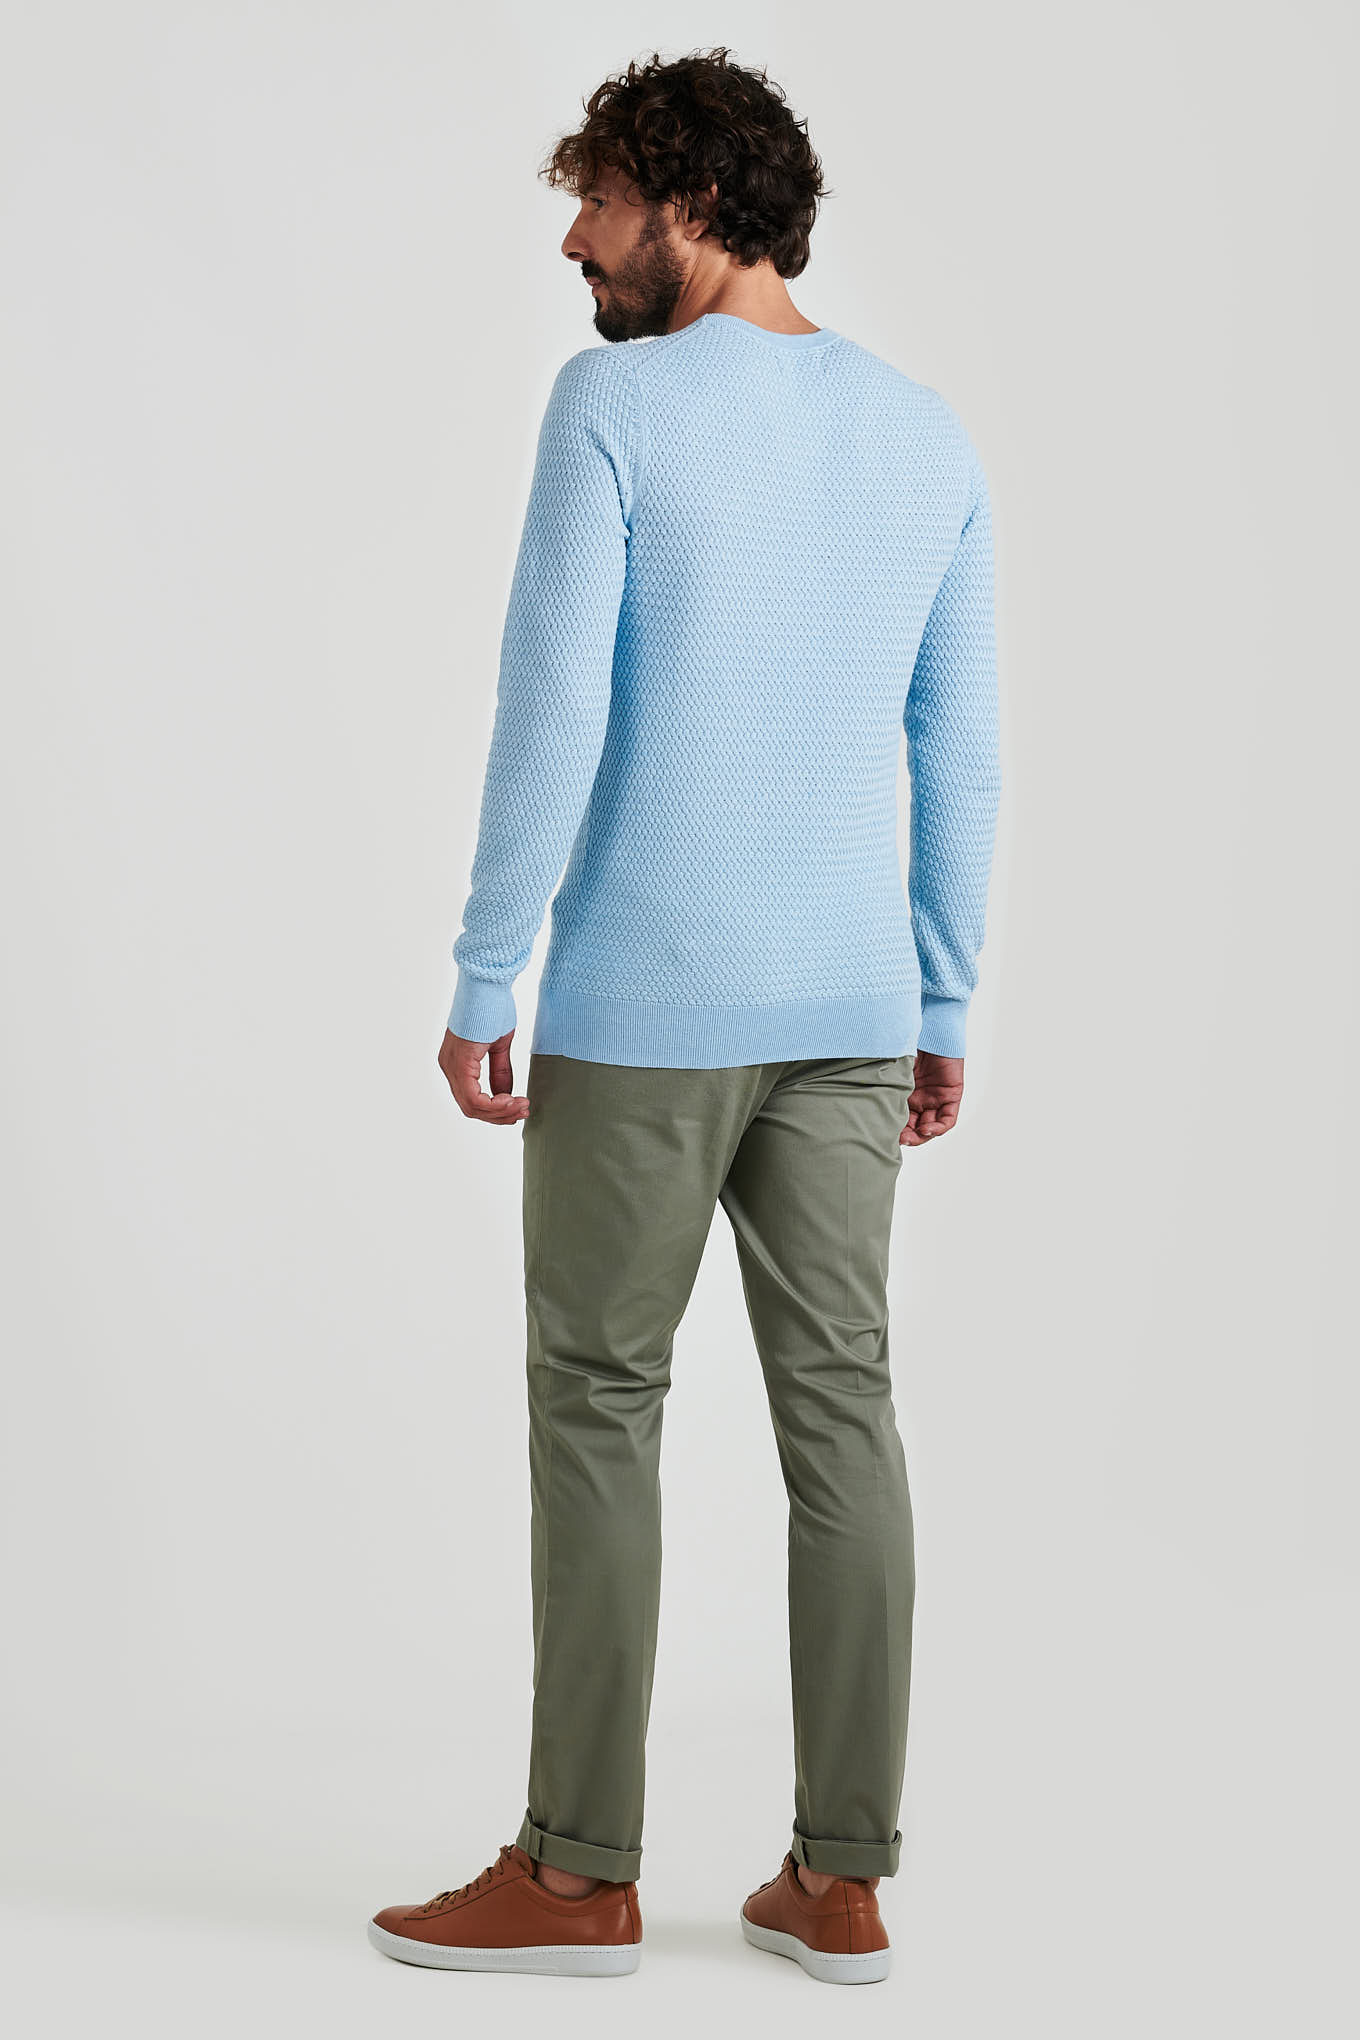 Sweater Light Blue Casual Man